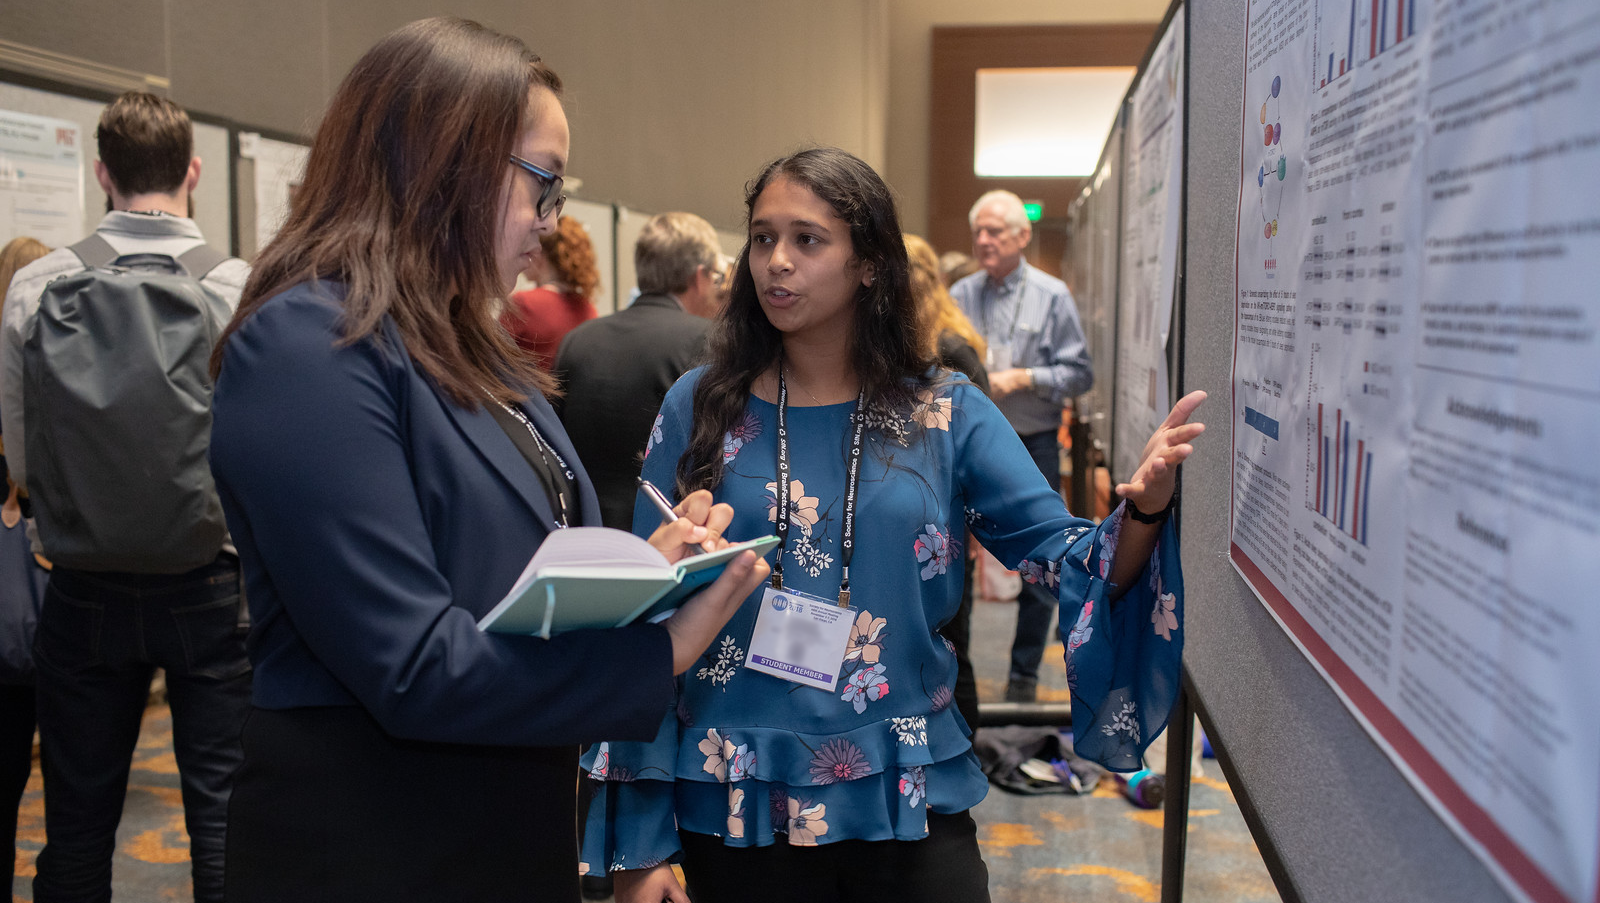 Student Member presenting a poster at Neuroscience 2018